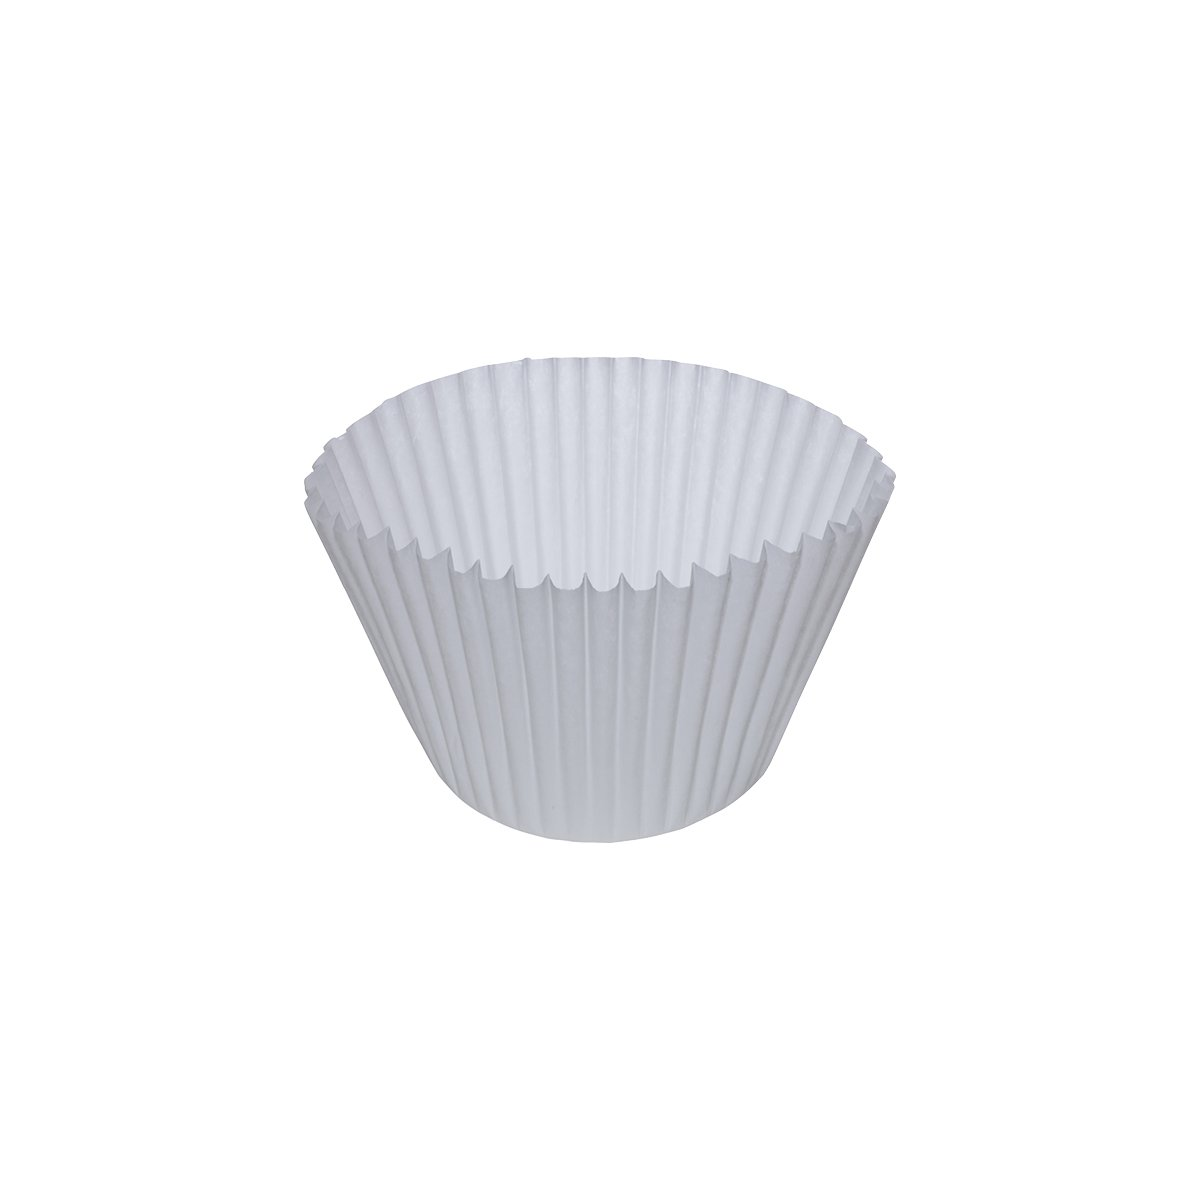 Wilbur Curtis Paper Filters 23.00 X 9.00, 500/Case - Commercial-Grade Paper Filters for Coffee Brewing - UP-10 (Pack of 500)